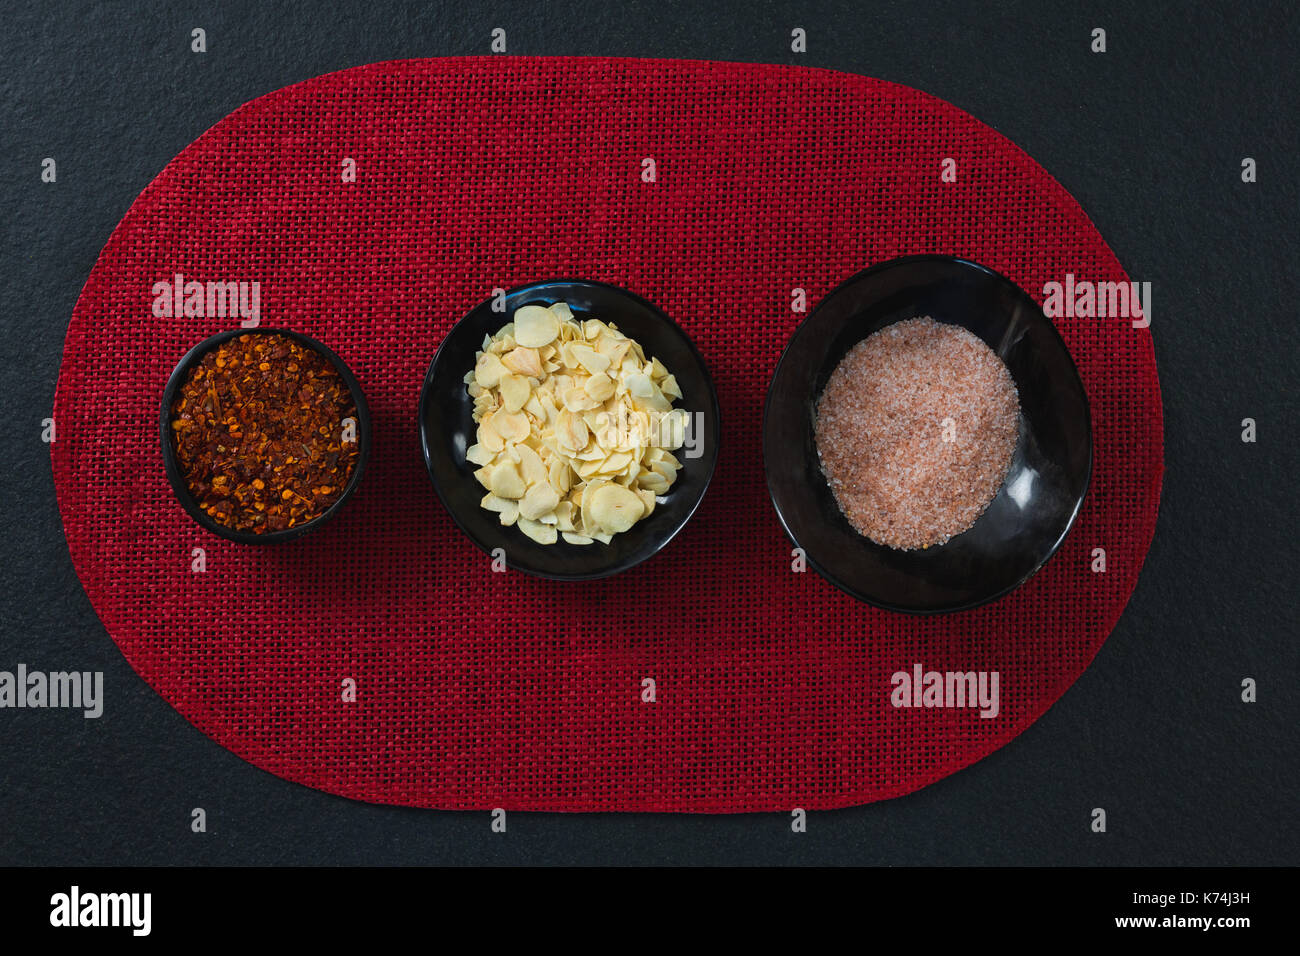 Red pepper flakes, roasted coconut chips and salt on a place mat - Stock Image